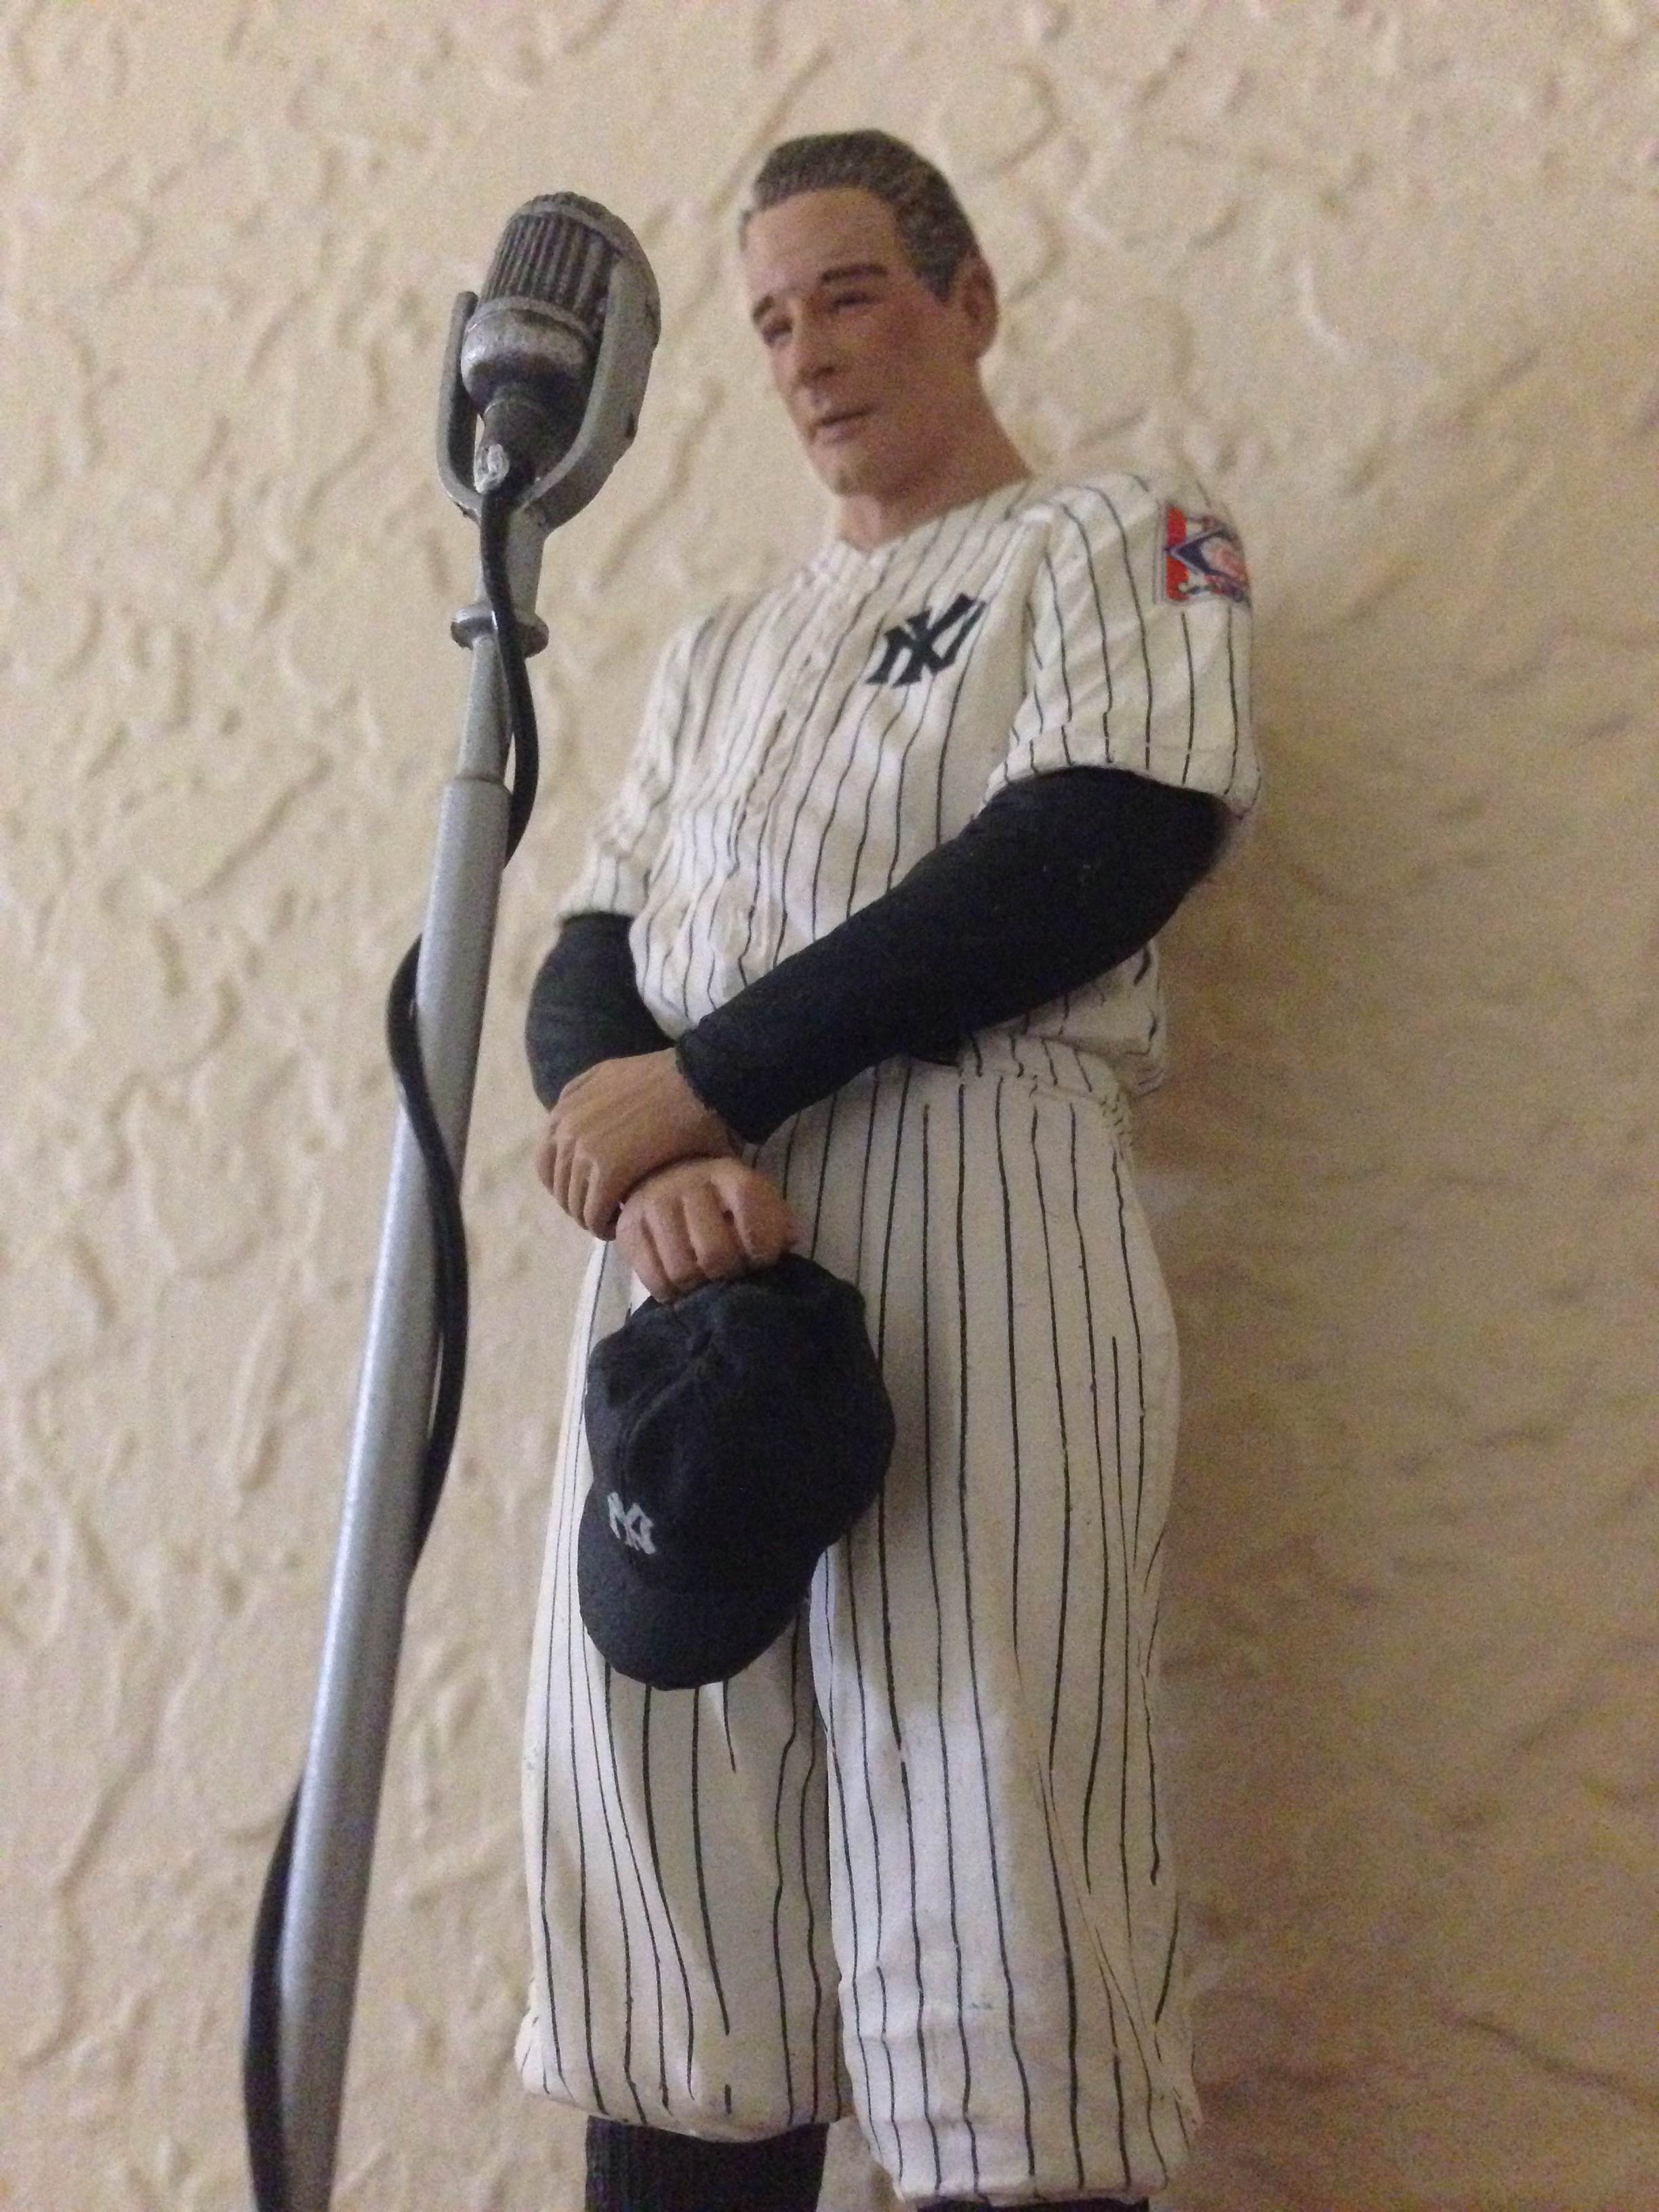 75th Anniversay of Lou Gehrig's Famous Speech Recreated by Modern Day MLB Players